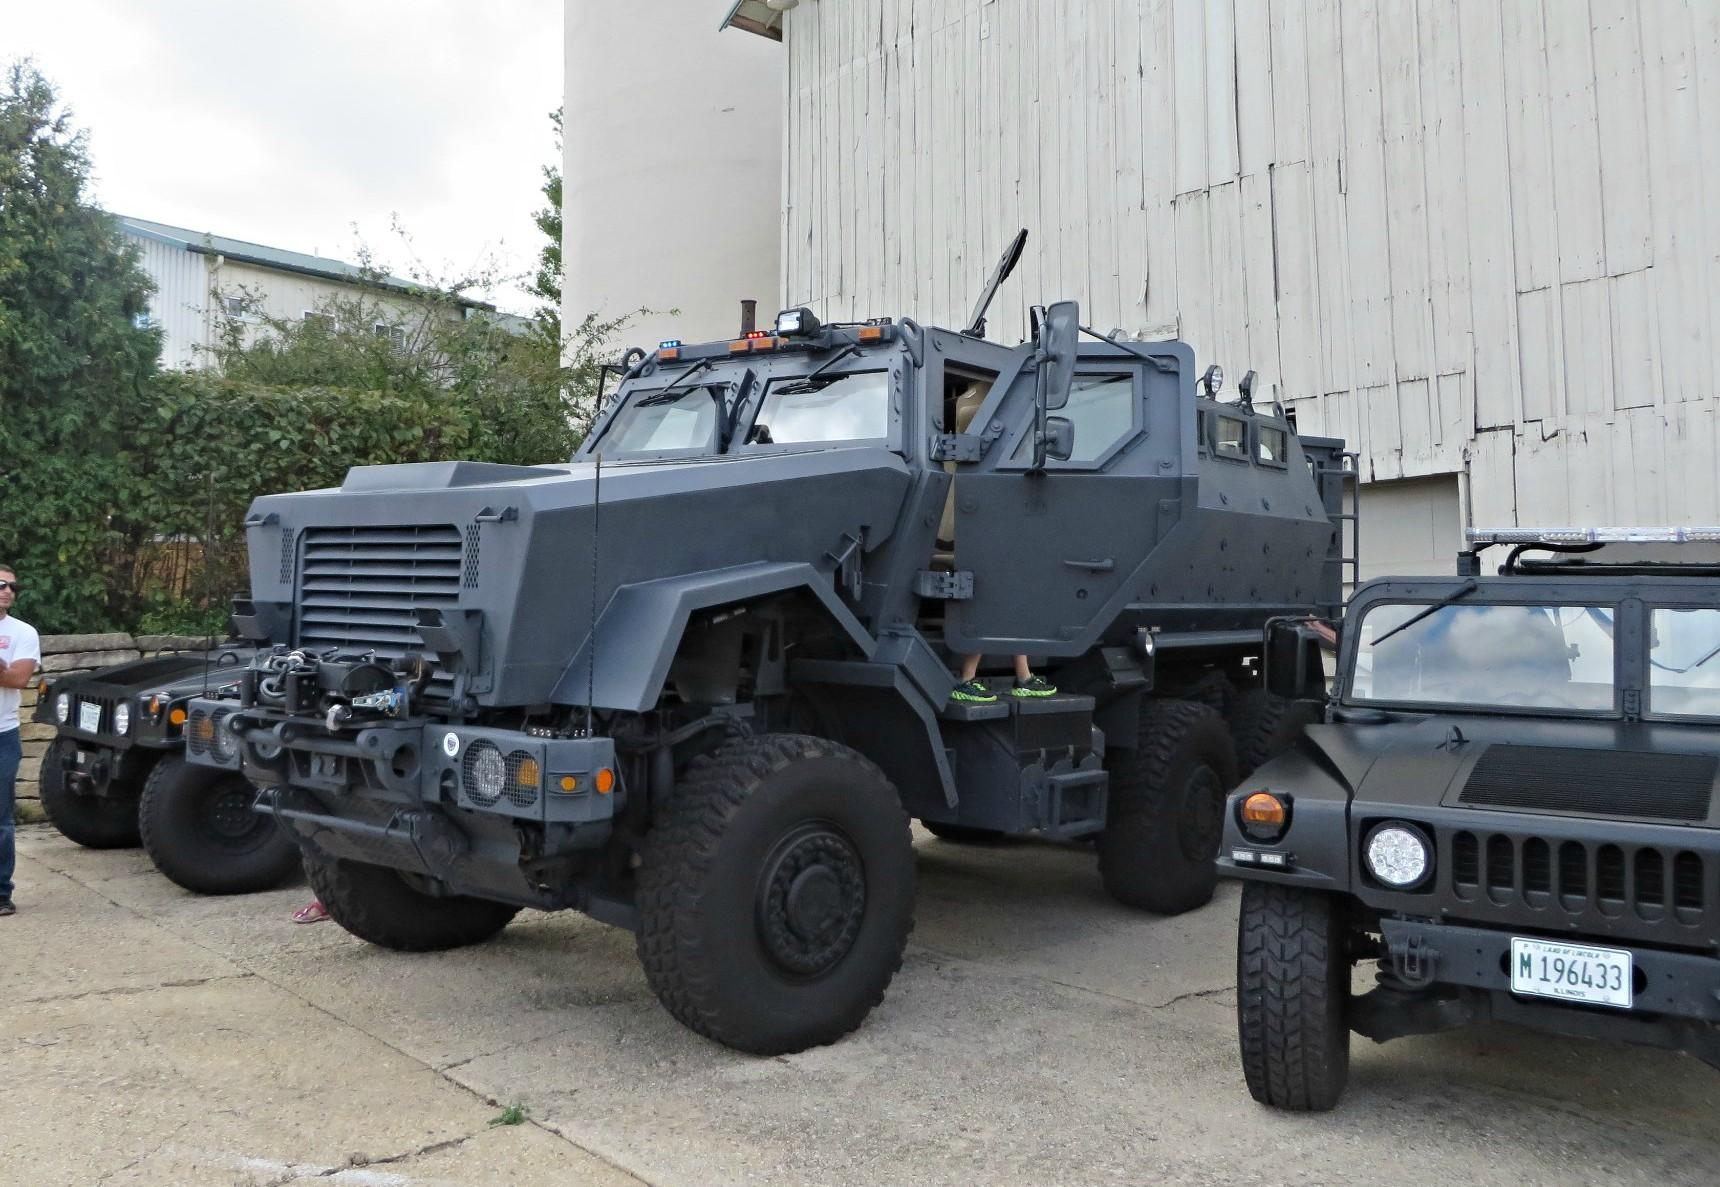 Government Surplus Cars: CMPD Declines To Seek Surplus Military Weapons, Equipment